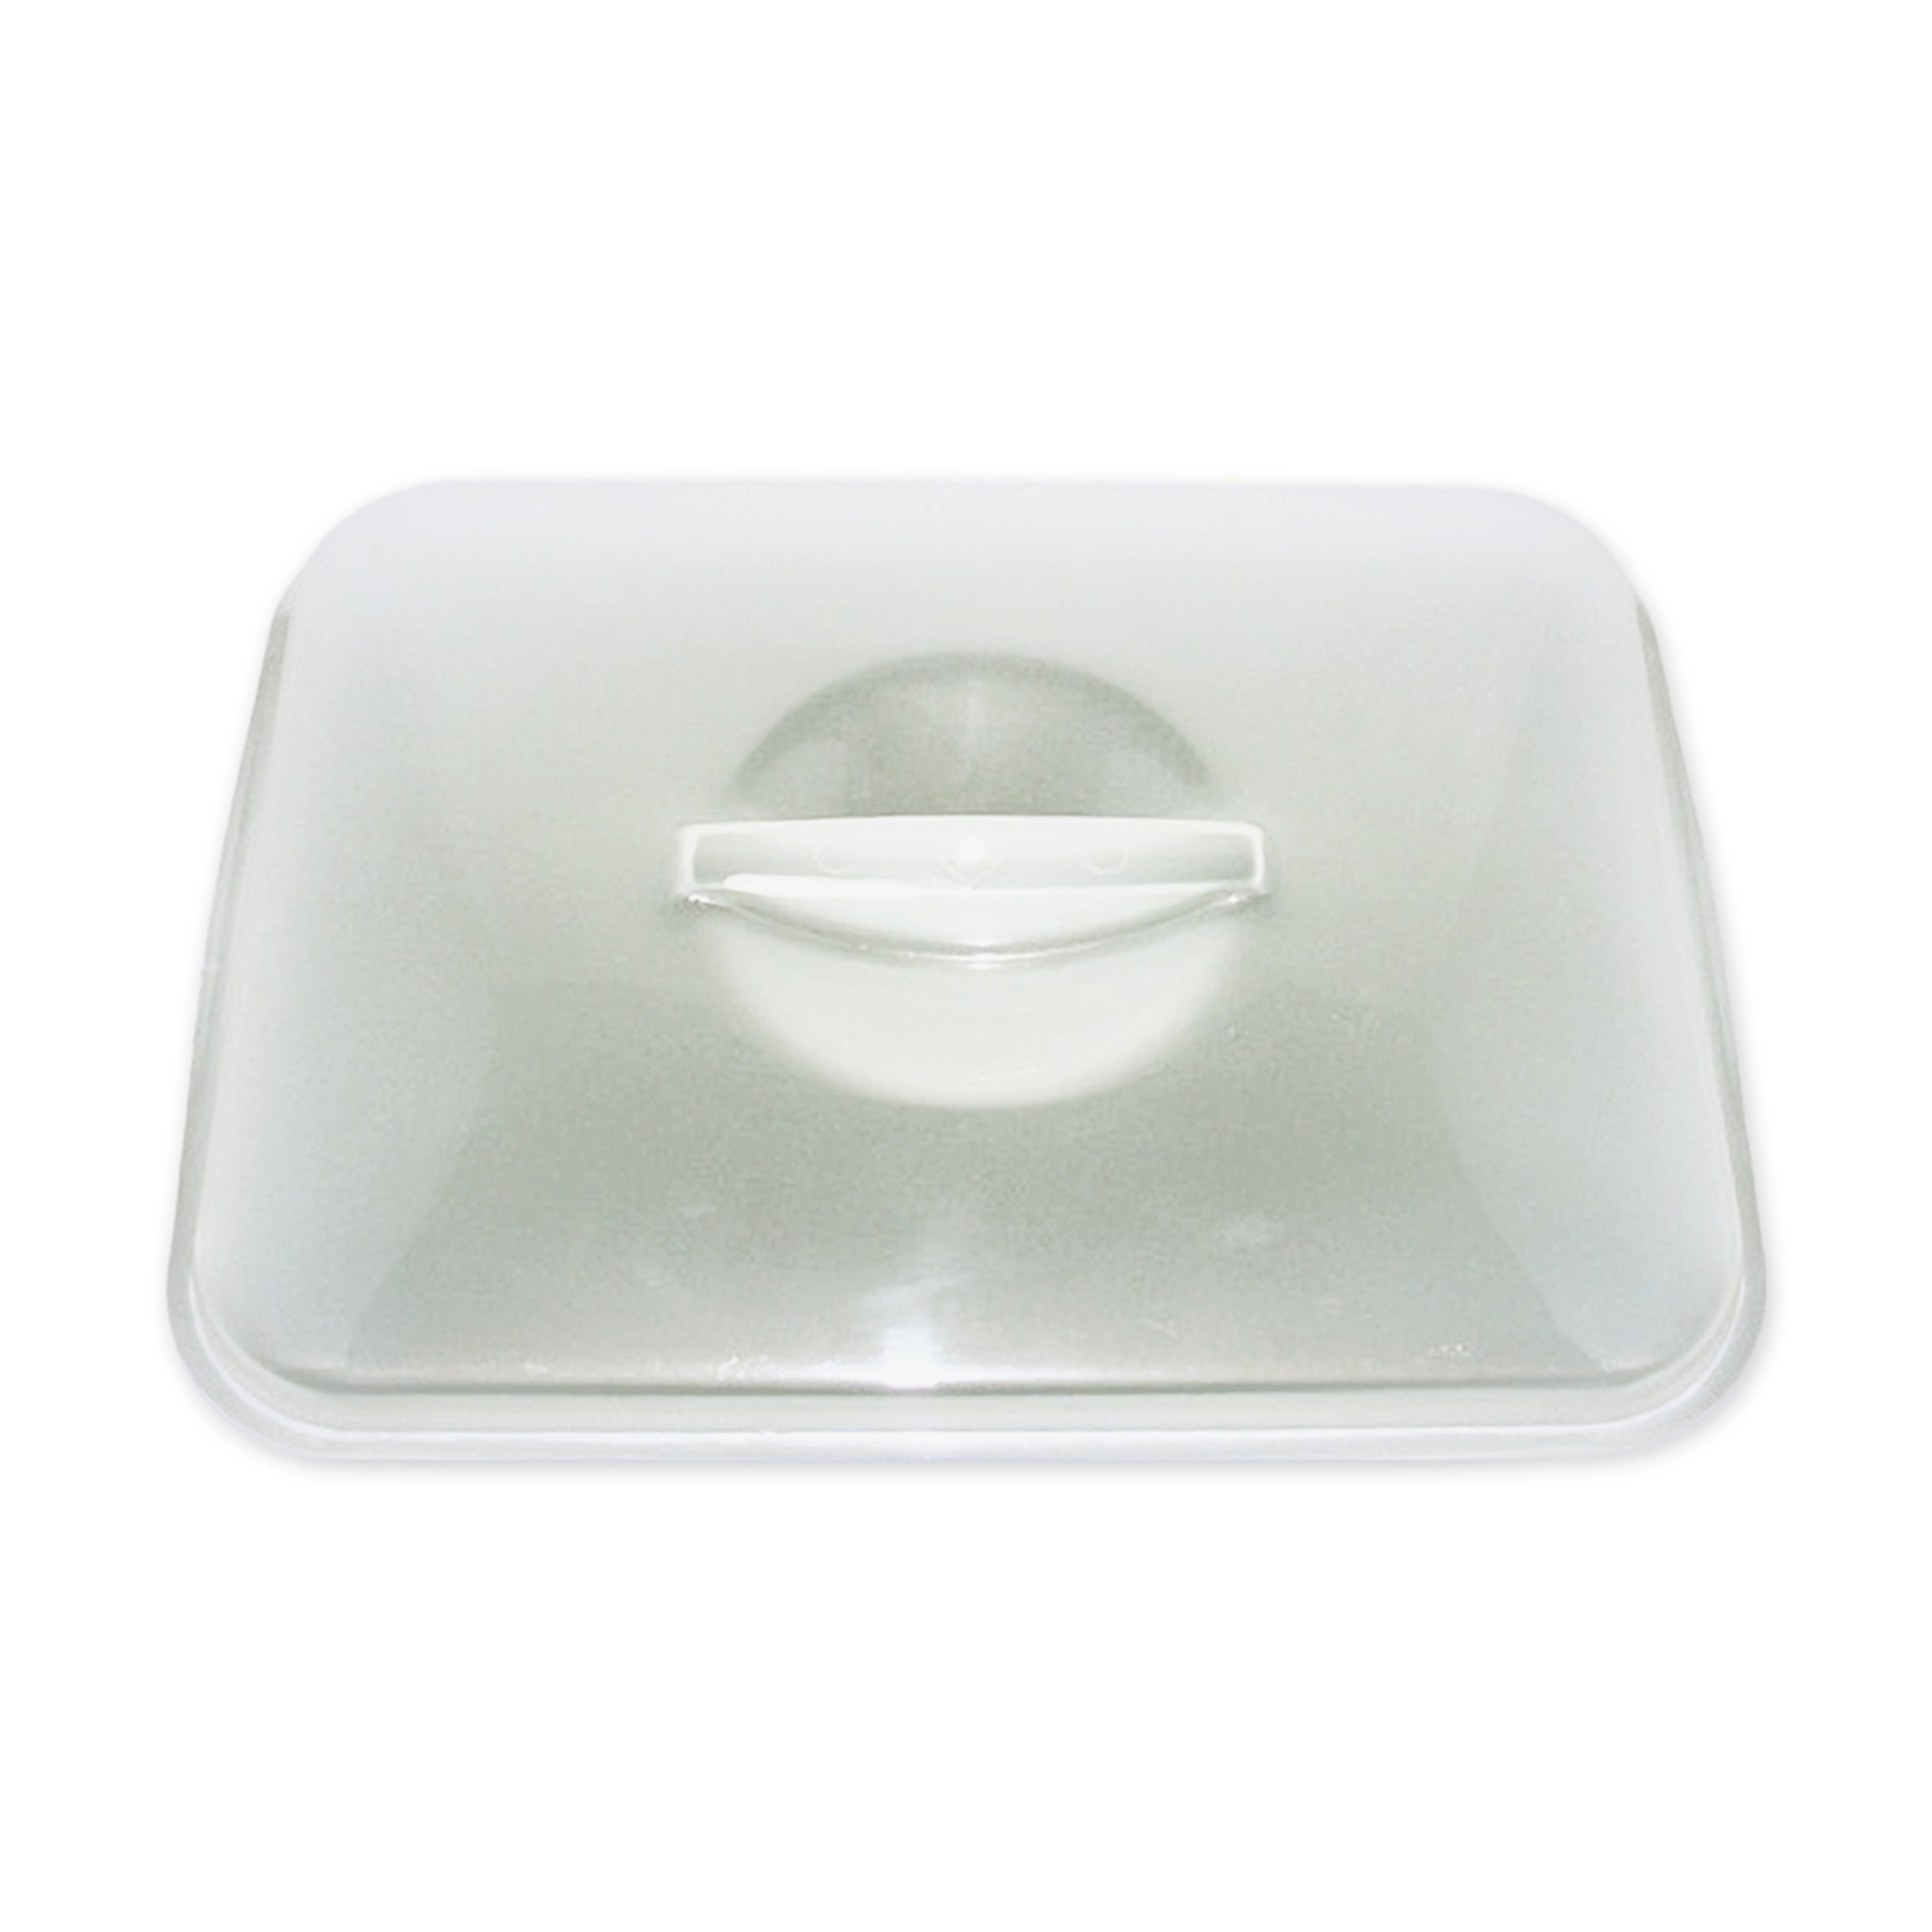 Lid for PP Container Image